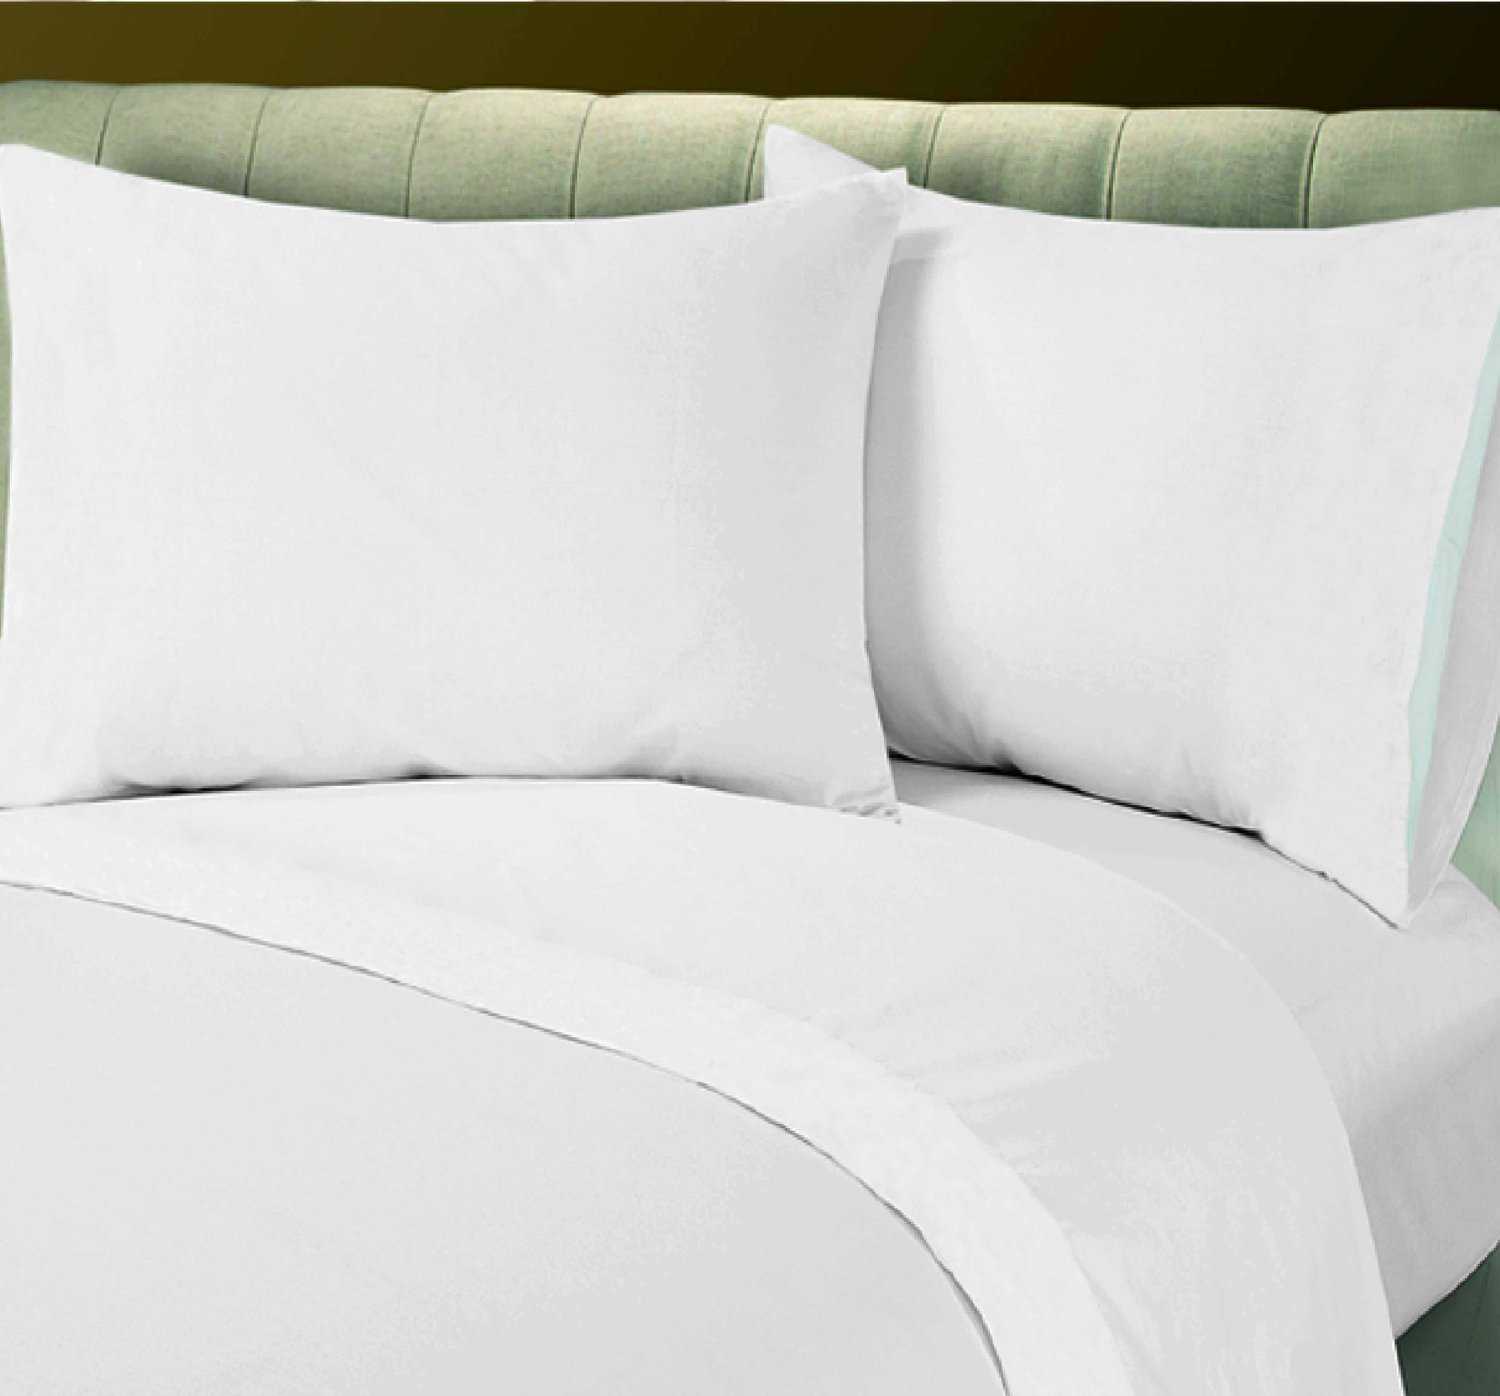 white bed sheets. Amazon.com: Union Hospitality Linens Cotton Blend Sheets Deals - Hotel White Bed Set. 6 Flat Sheets, Fitted 12 Pillowcases T250 L